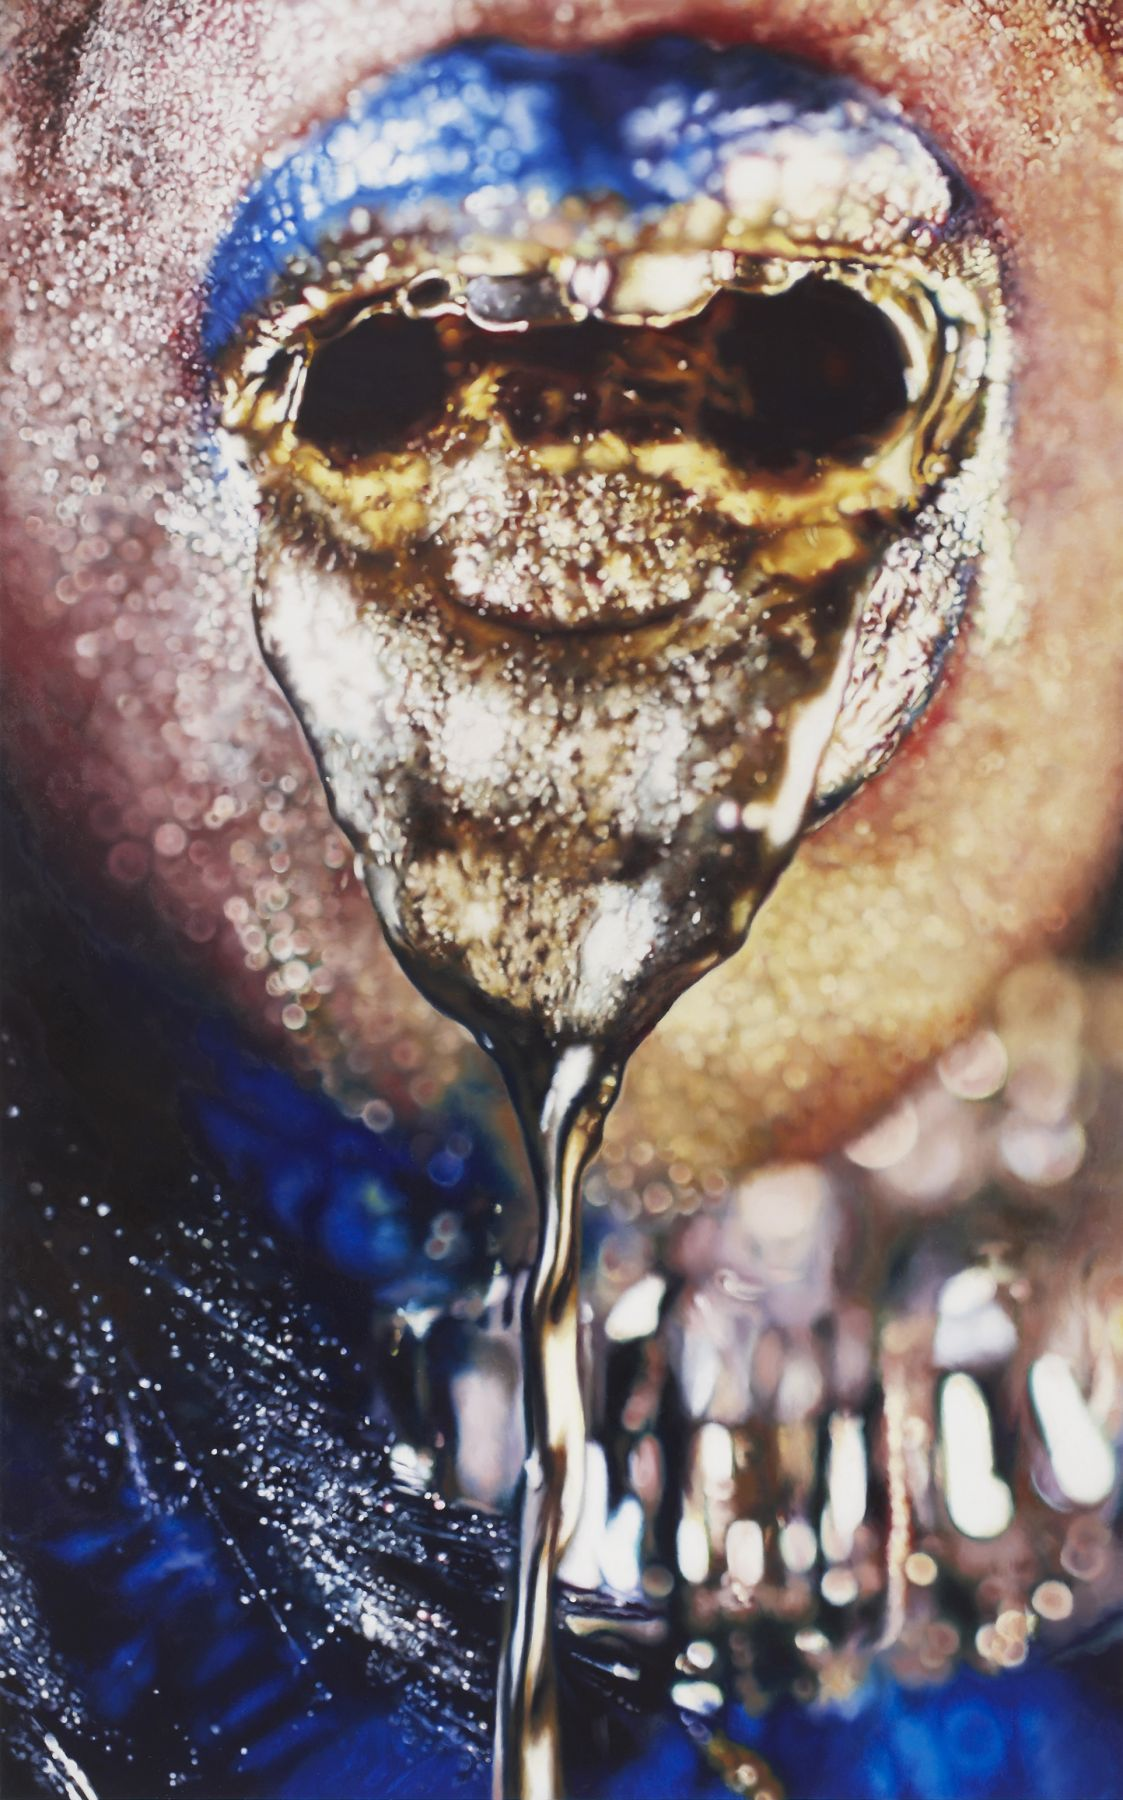 Marilyn Minter, Drizzle